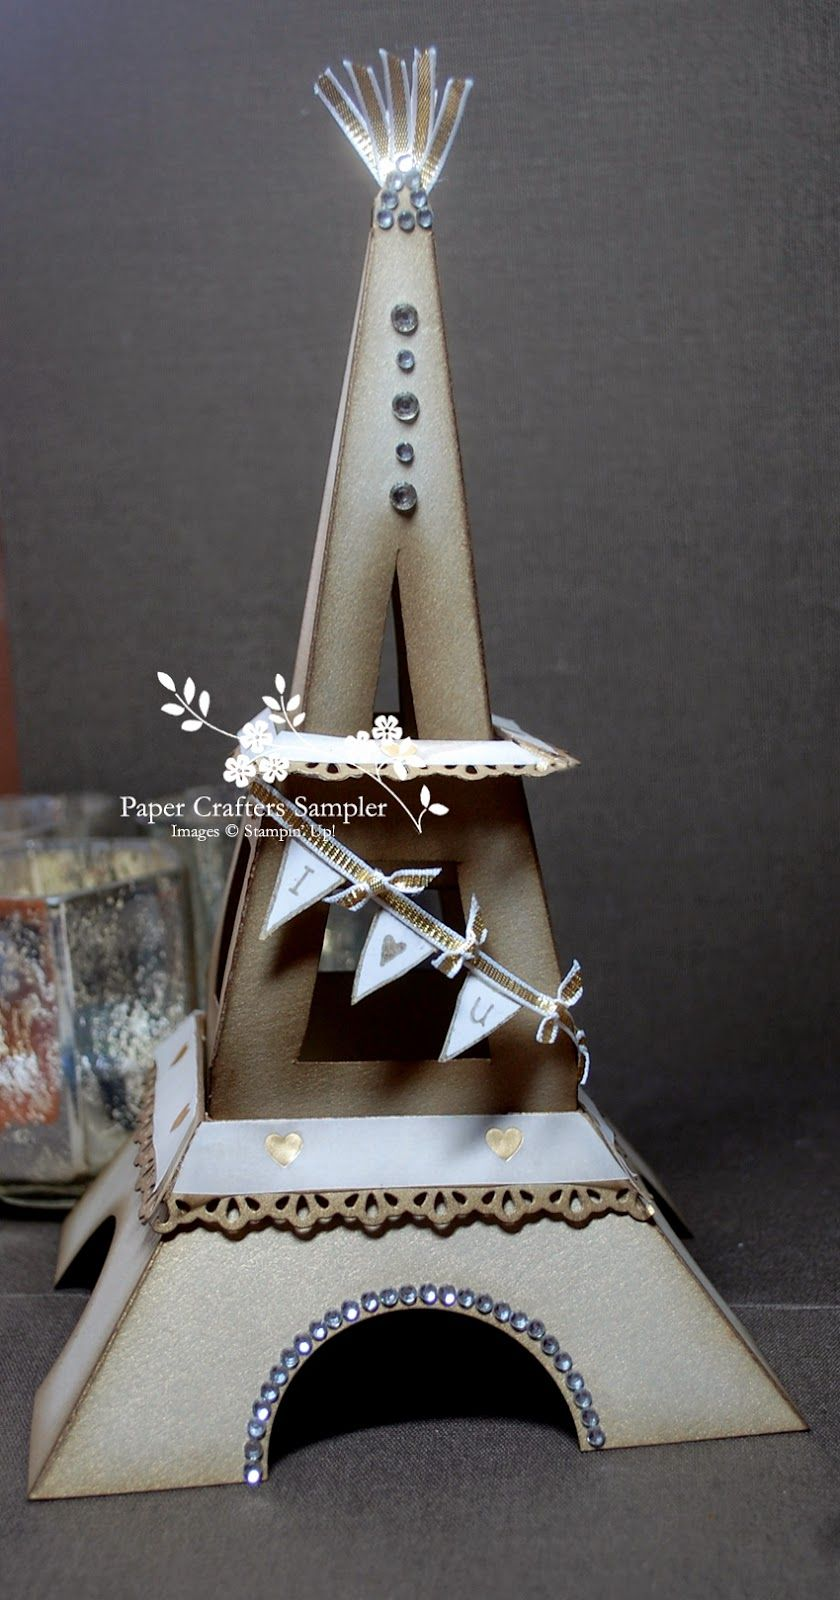 Eiffel Tower template - Paper Crafters Sampler http ...